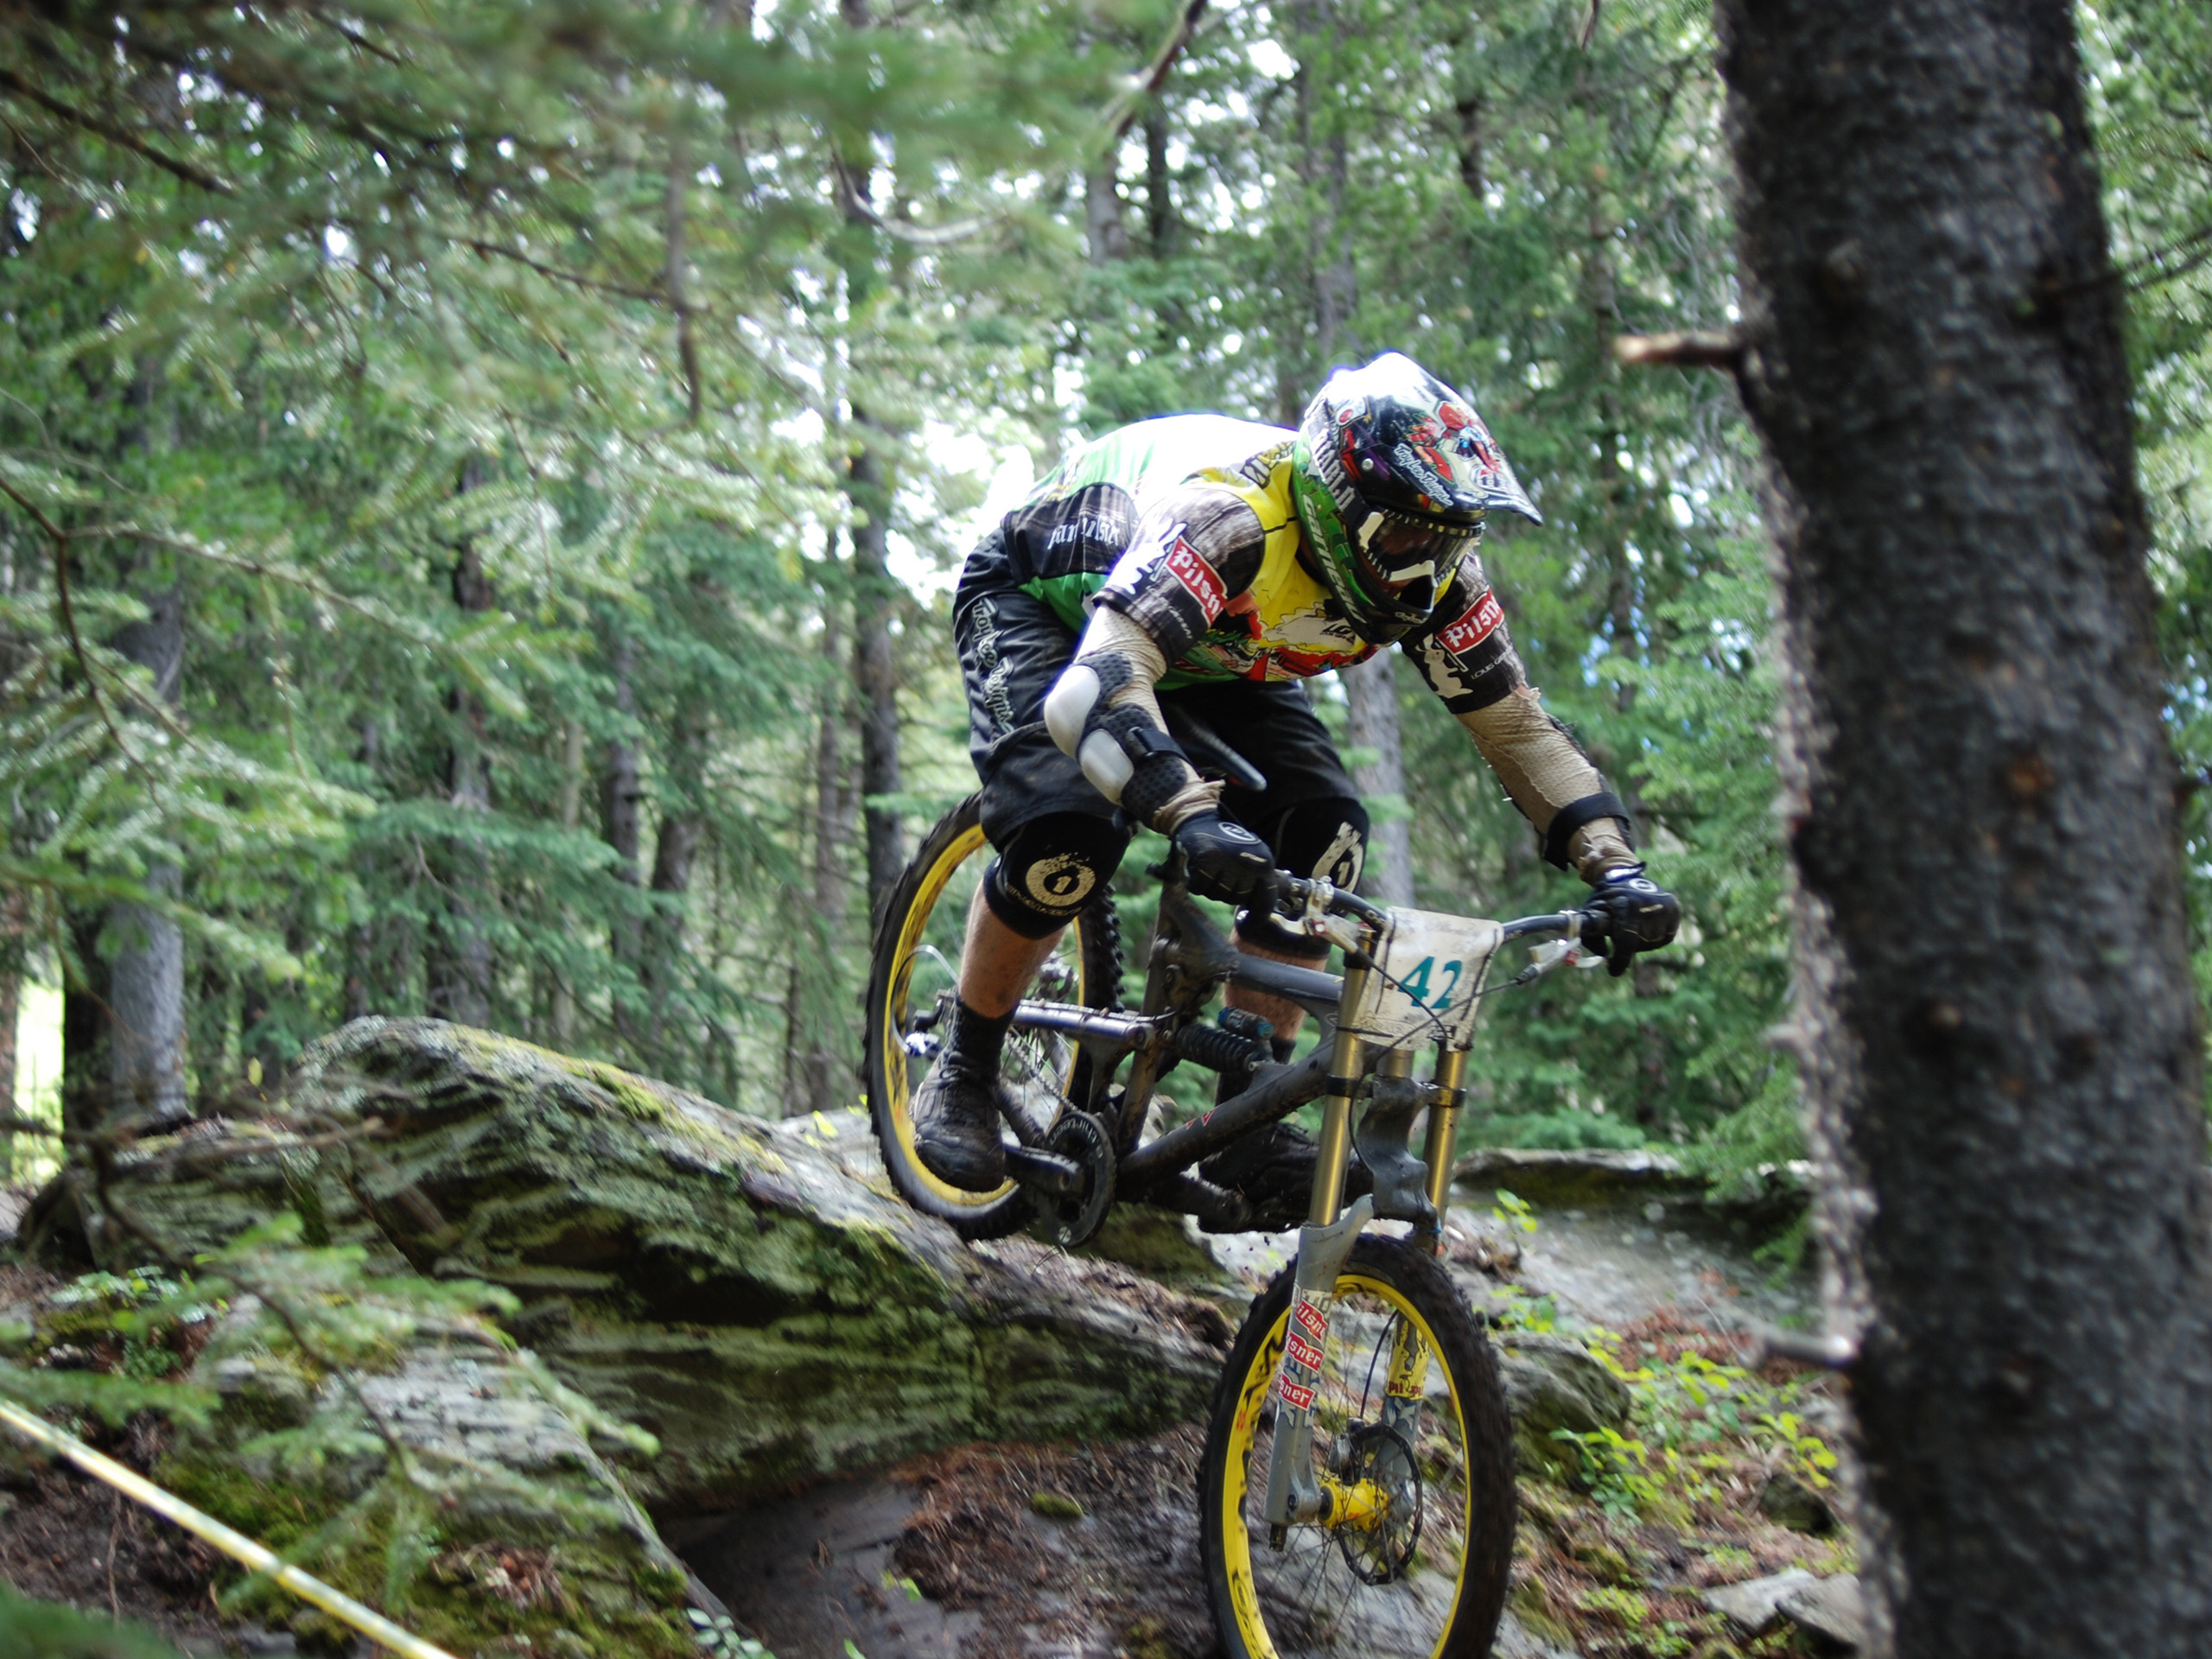 mountain bike in downhill race